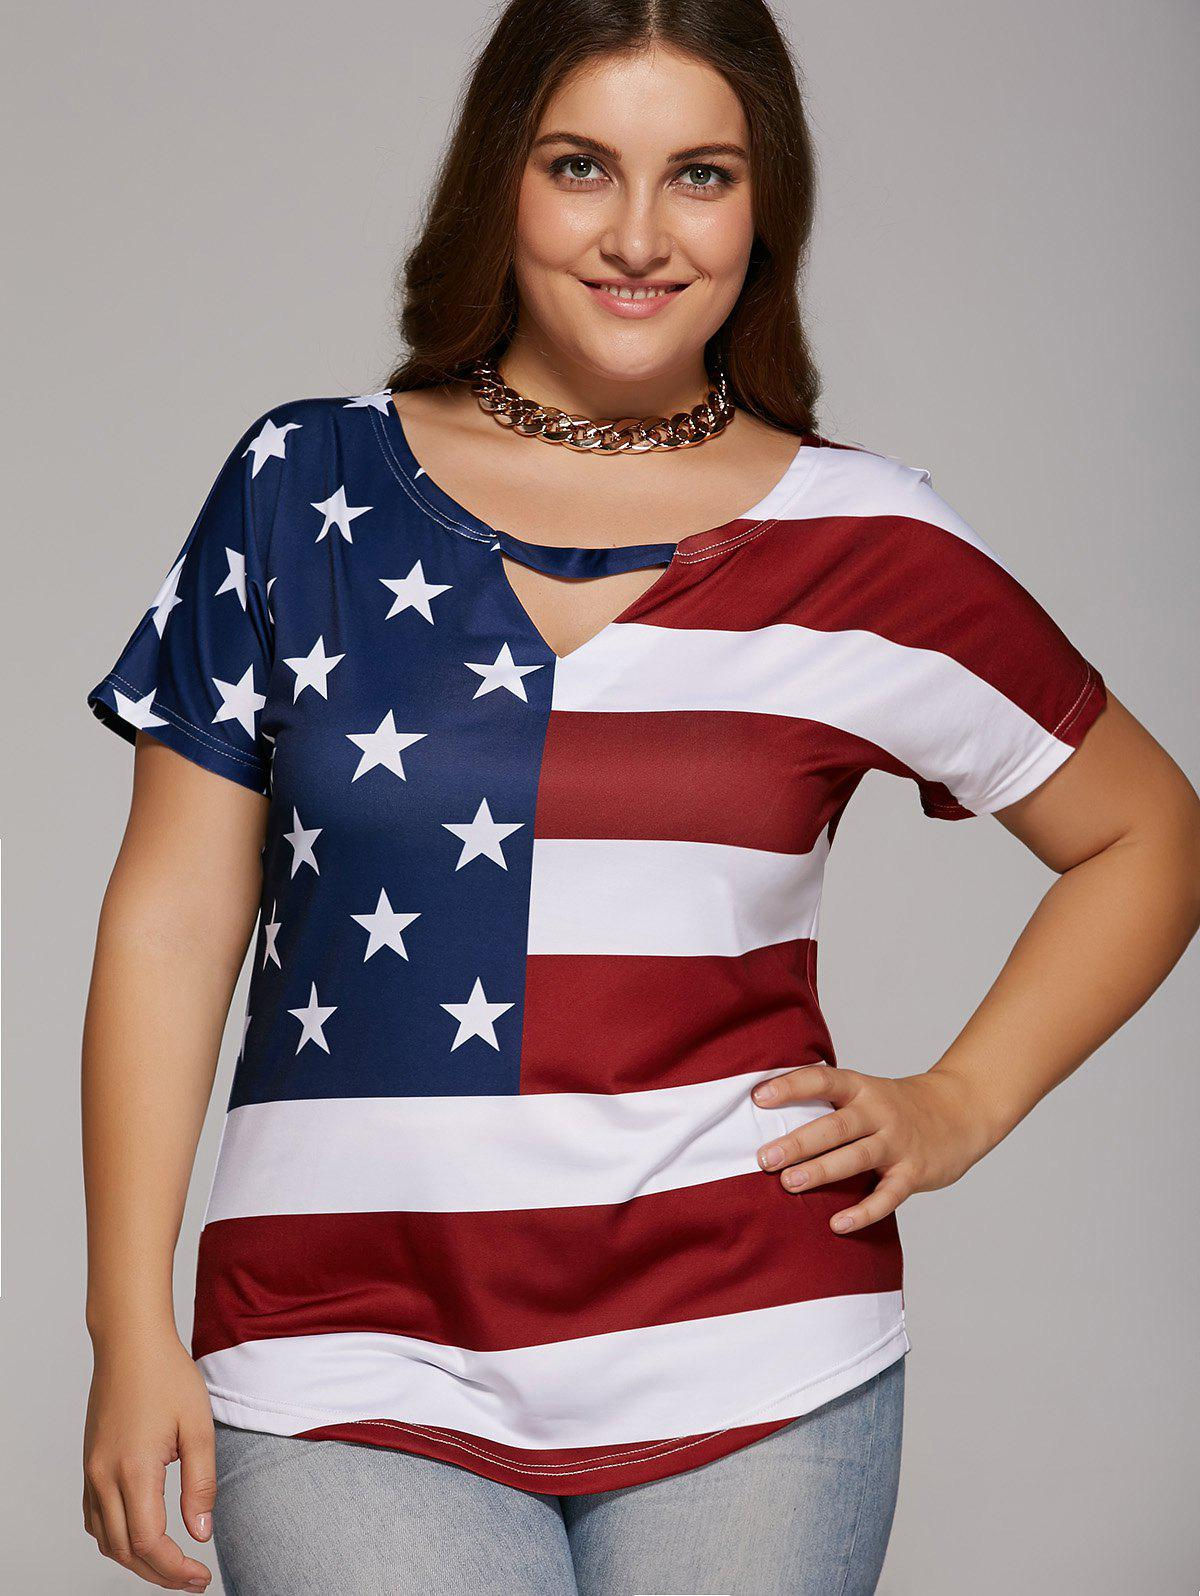 Oversized Cut Out American Flag Print T-Shirt - RED/WHITE/BLUE 5XL